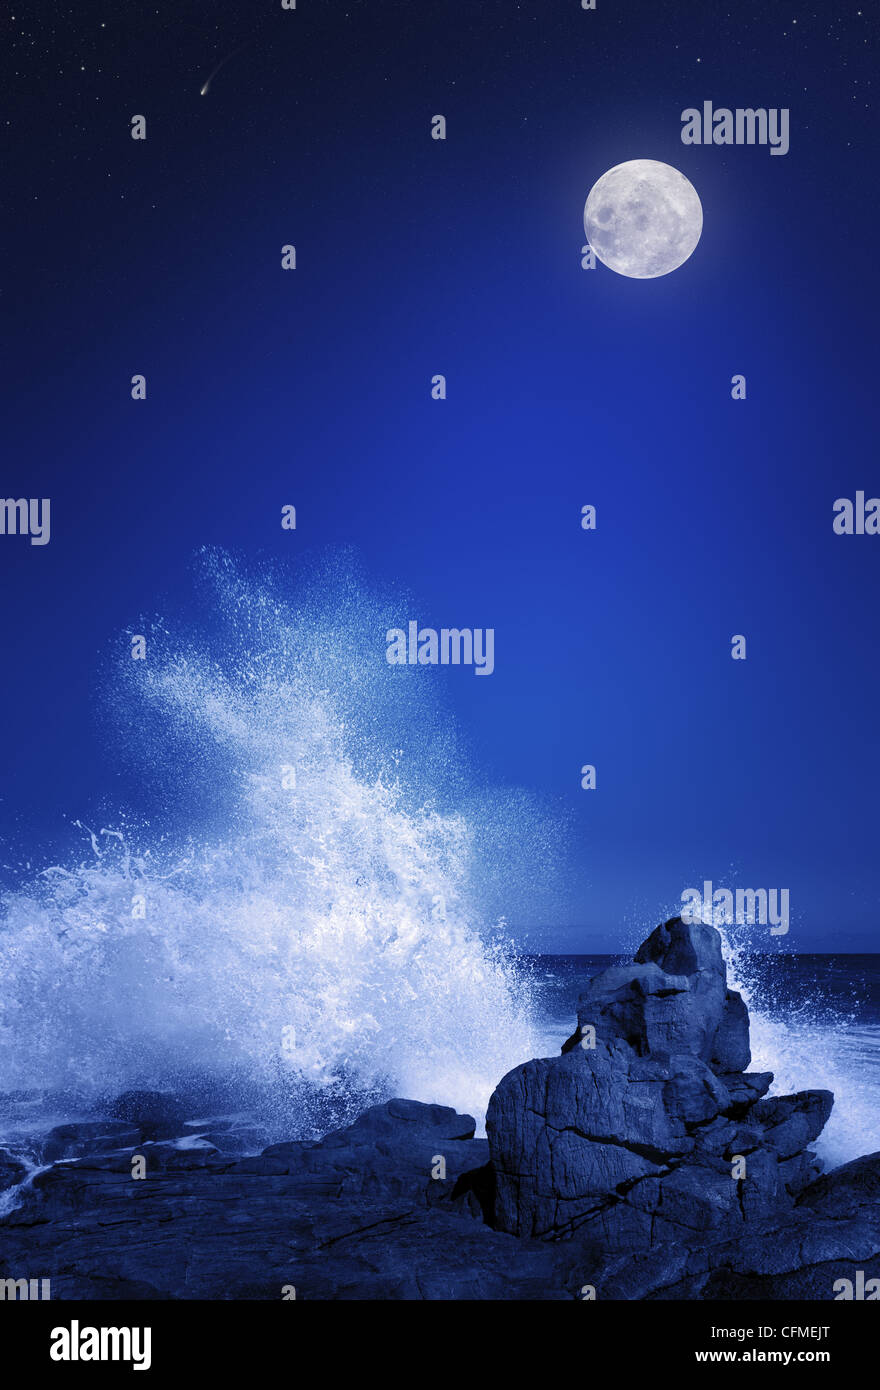 Rising moon over Rocky coastline (Elements of this image furnished by NASA: moonmap http://visibleearth.nasa.gov) - Stock Image